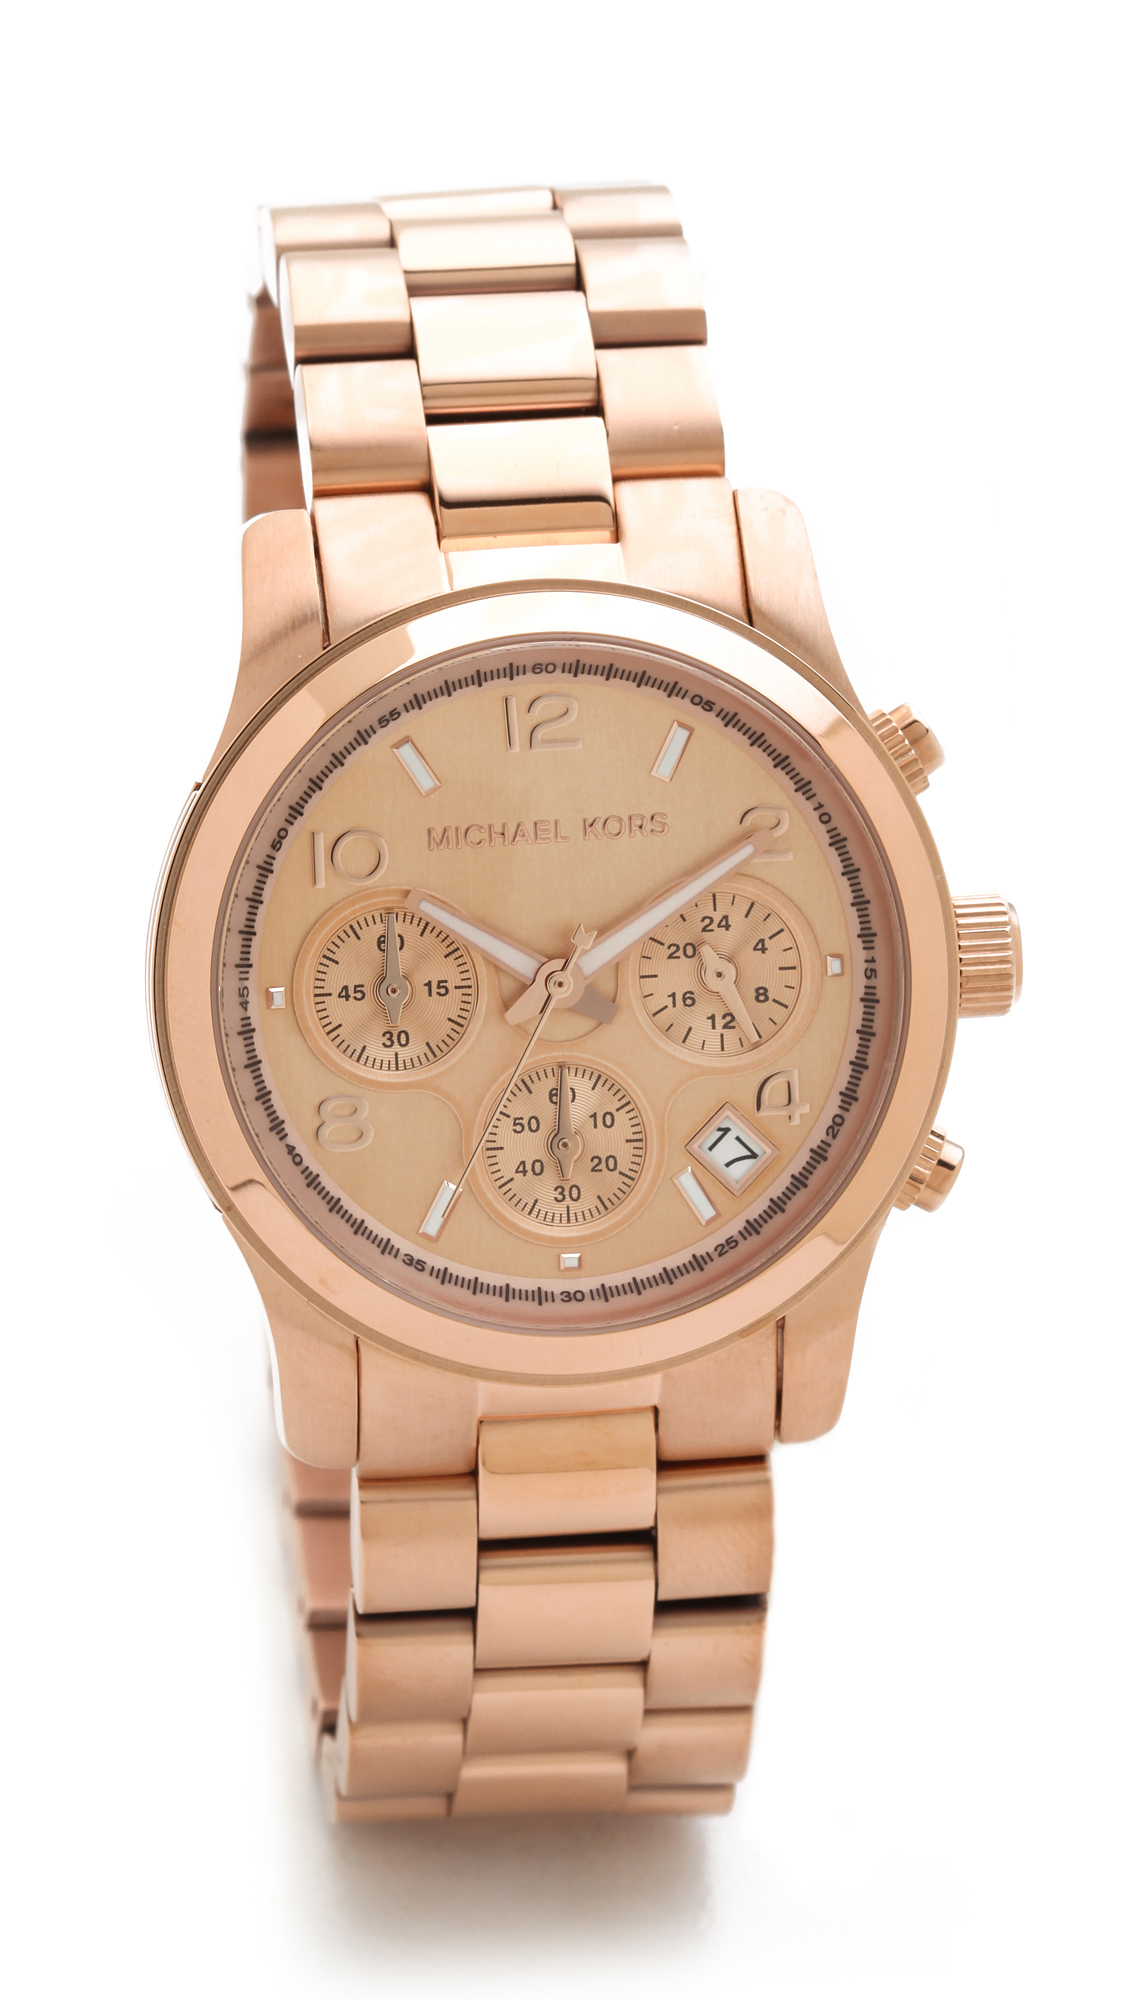 Michael kors runway watch rose gold in gold pink lyst for Watches michael kors